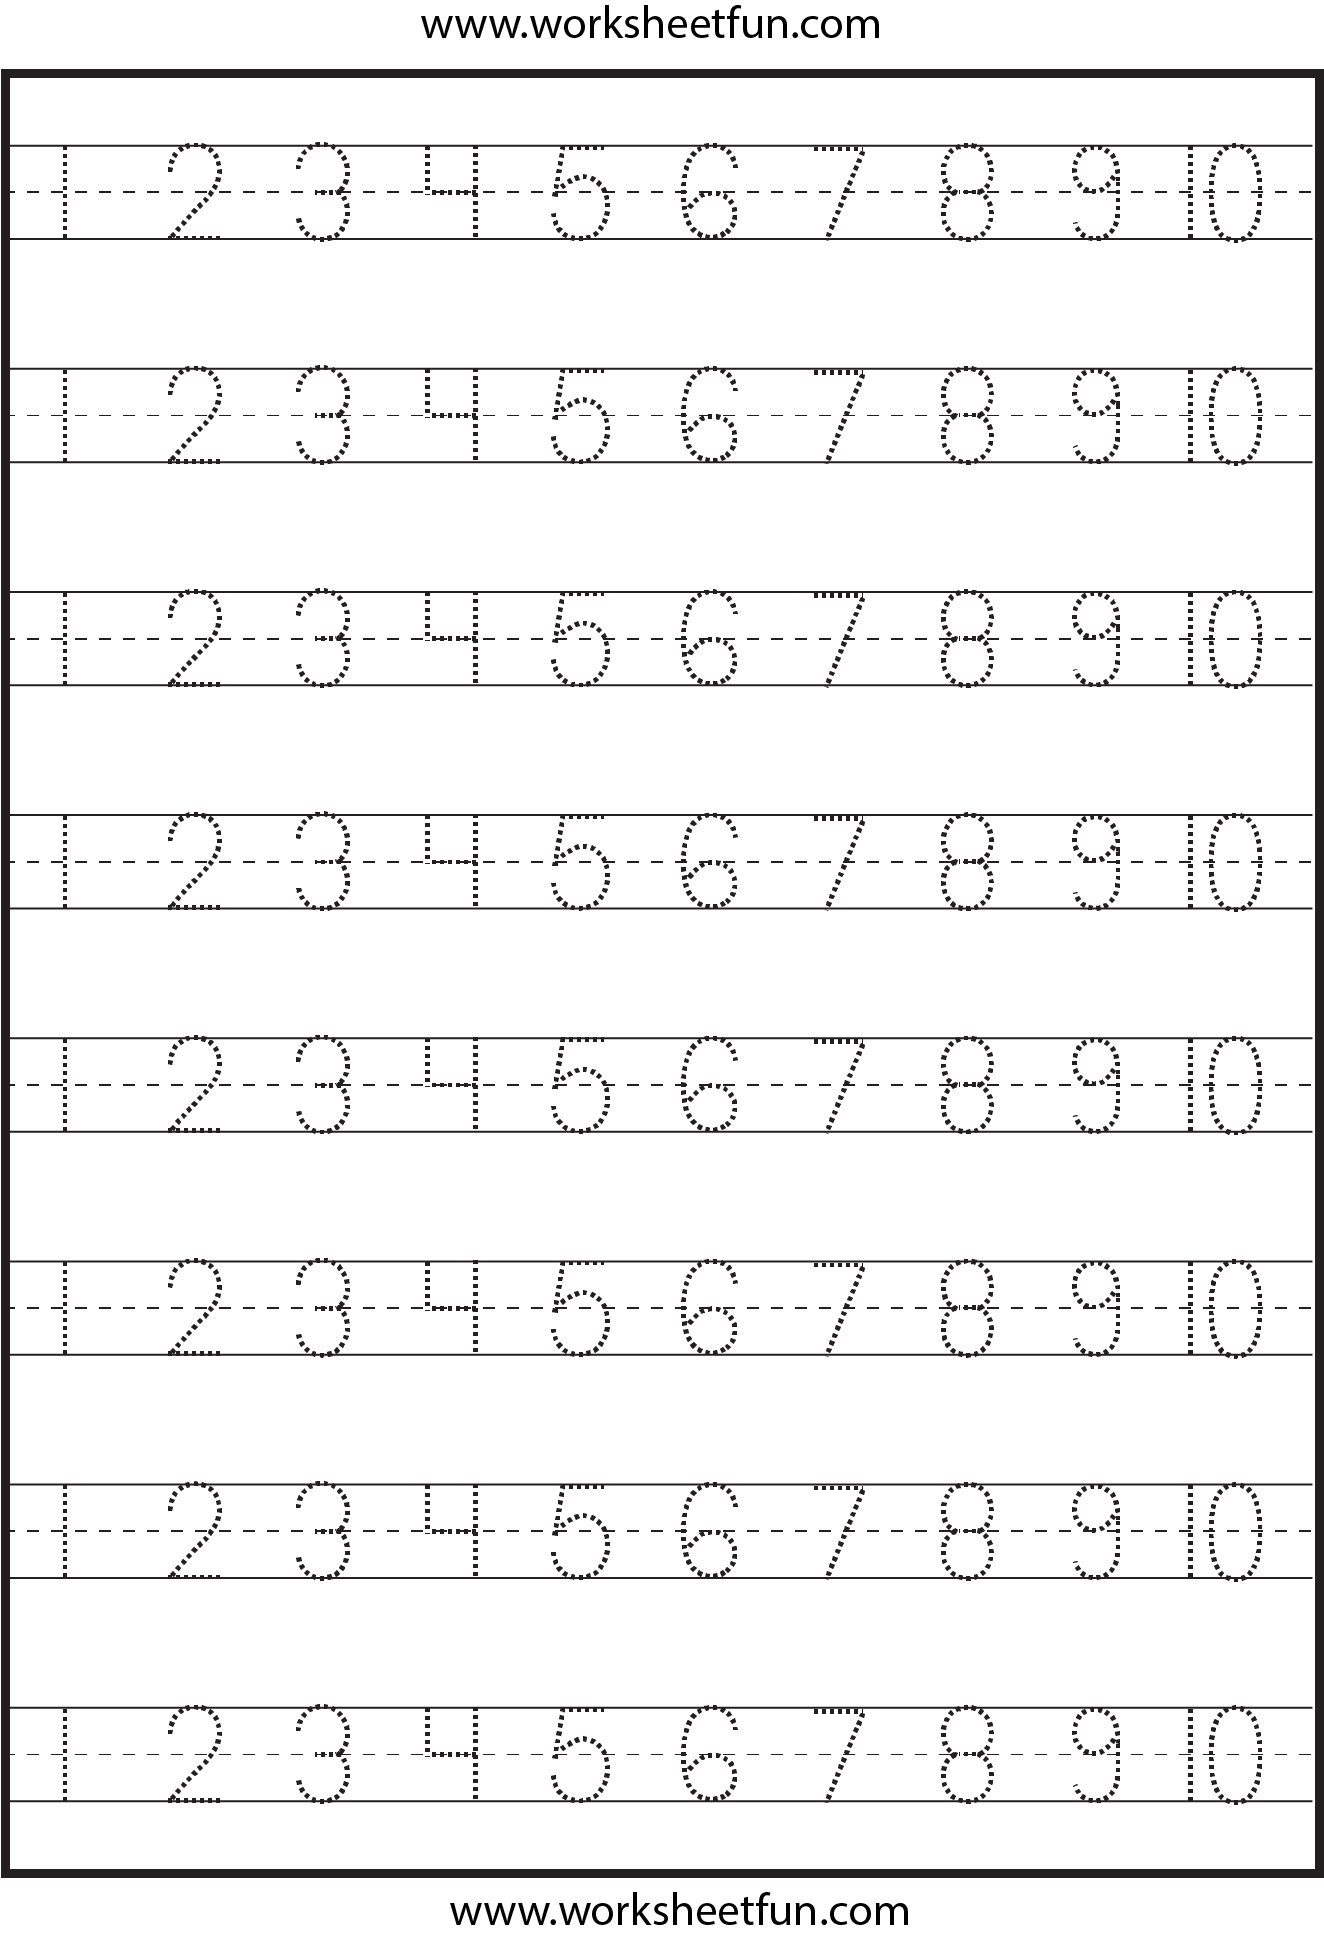 number tracing 1 10 worksheet free printable worksheets worksheetfun. Black Bedroom Furniture Sets. Home Design Ideas